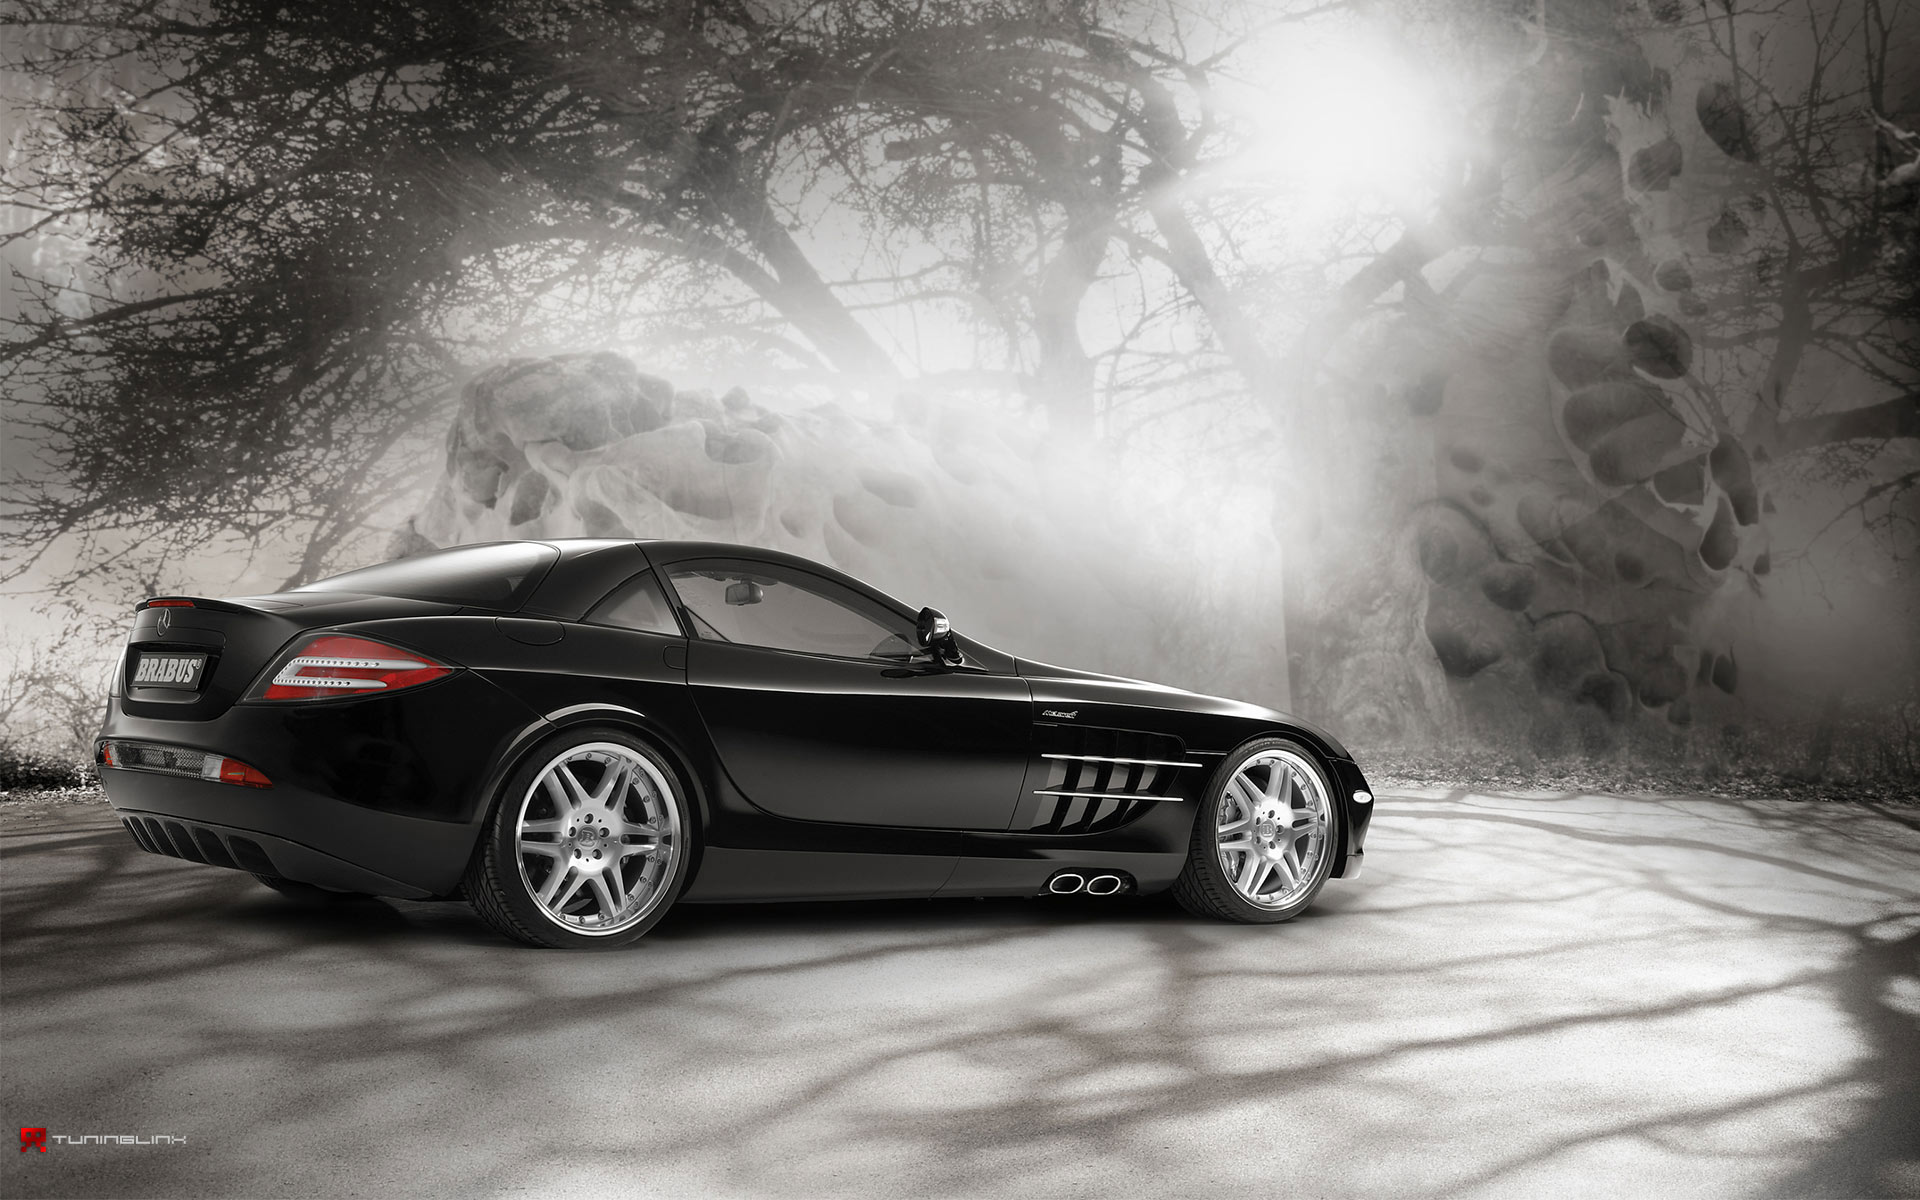 1920x1200 Mercedes Slr In Magic Forest 2 Desktop Pc And